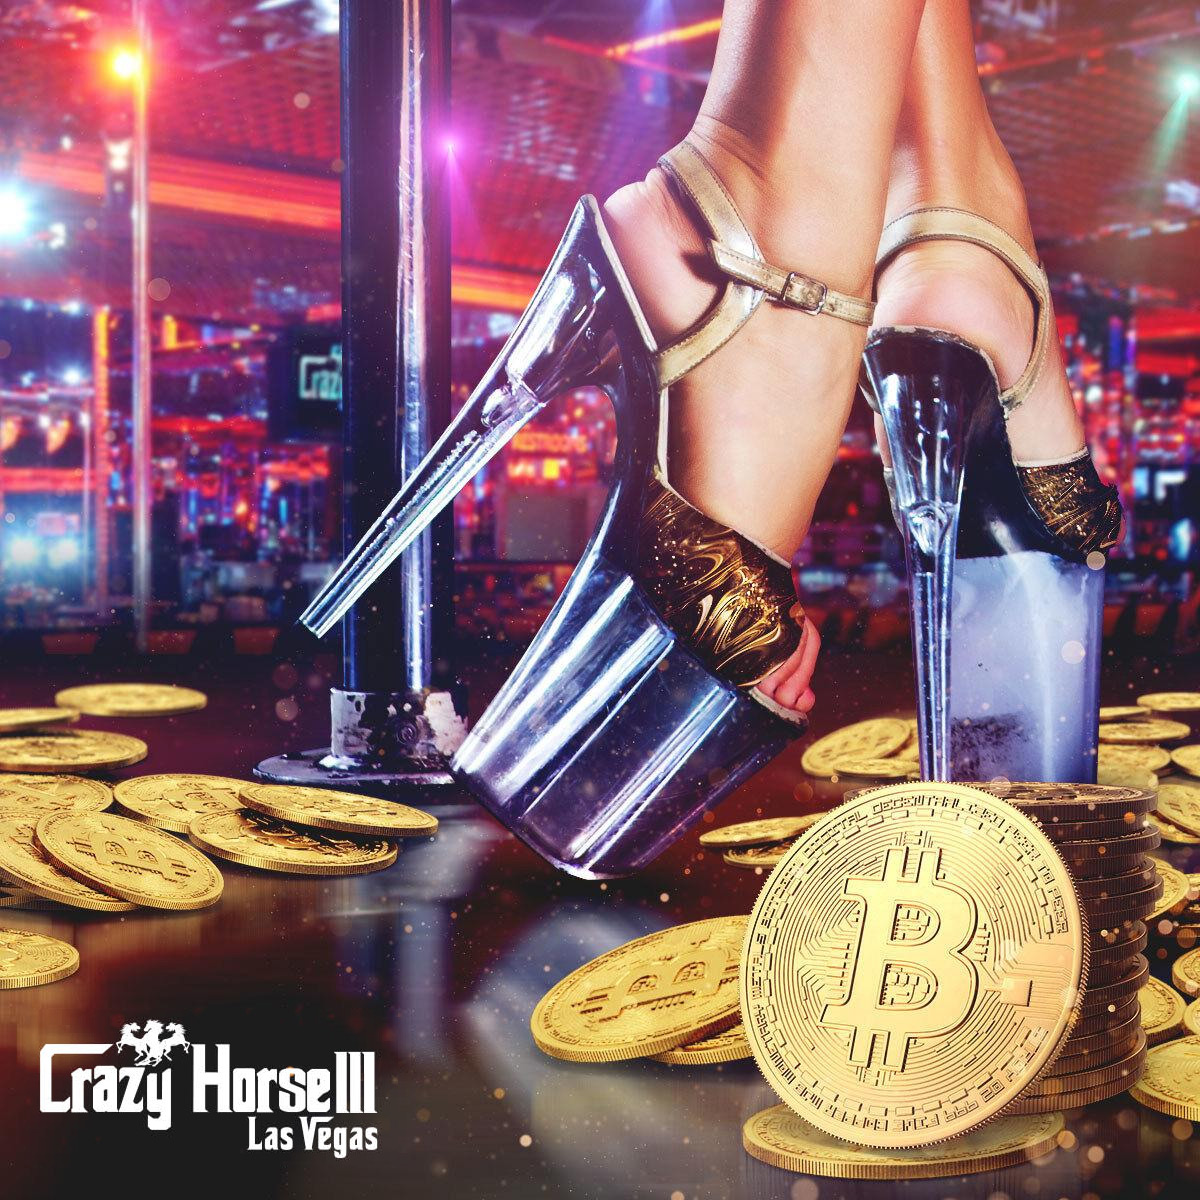 Crazy Horse 3 strip club in Las Vegas to accept Bitcoin payments